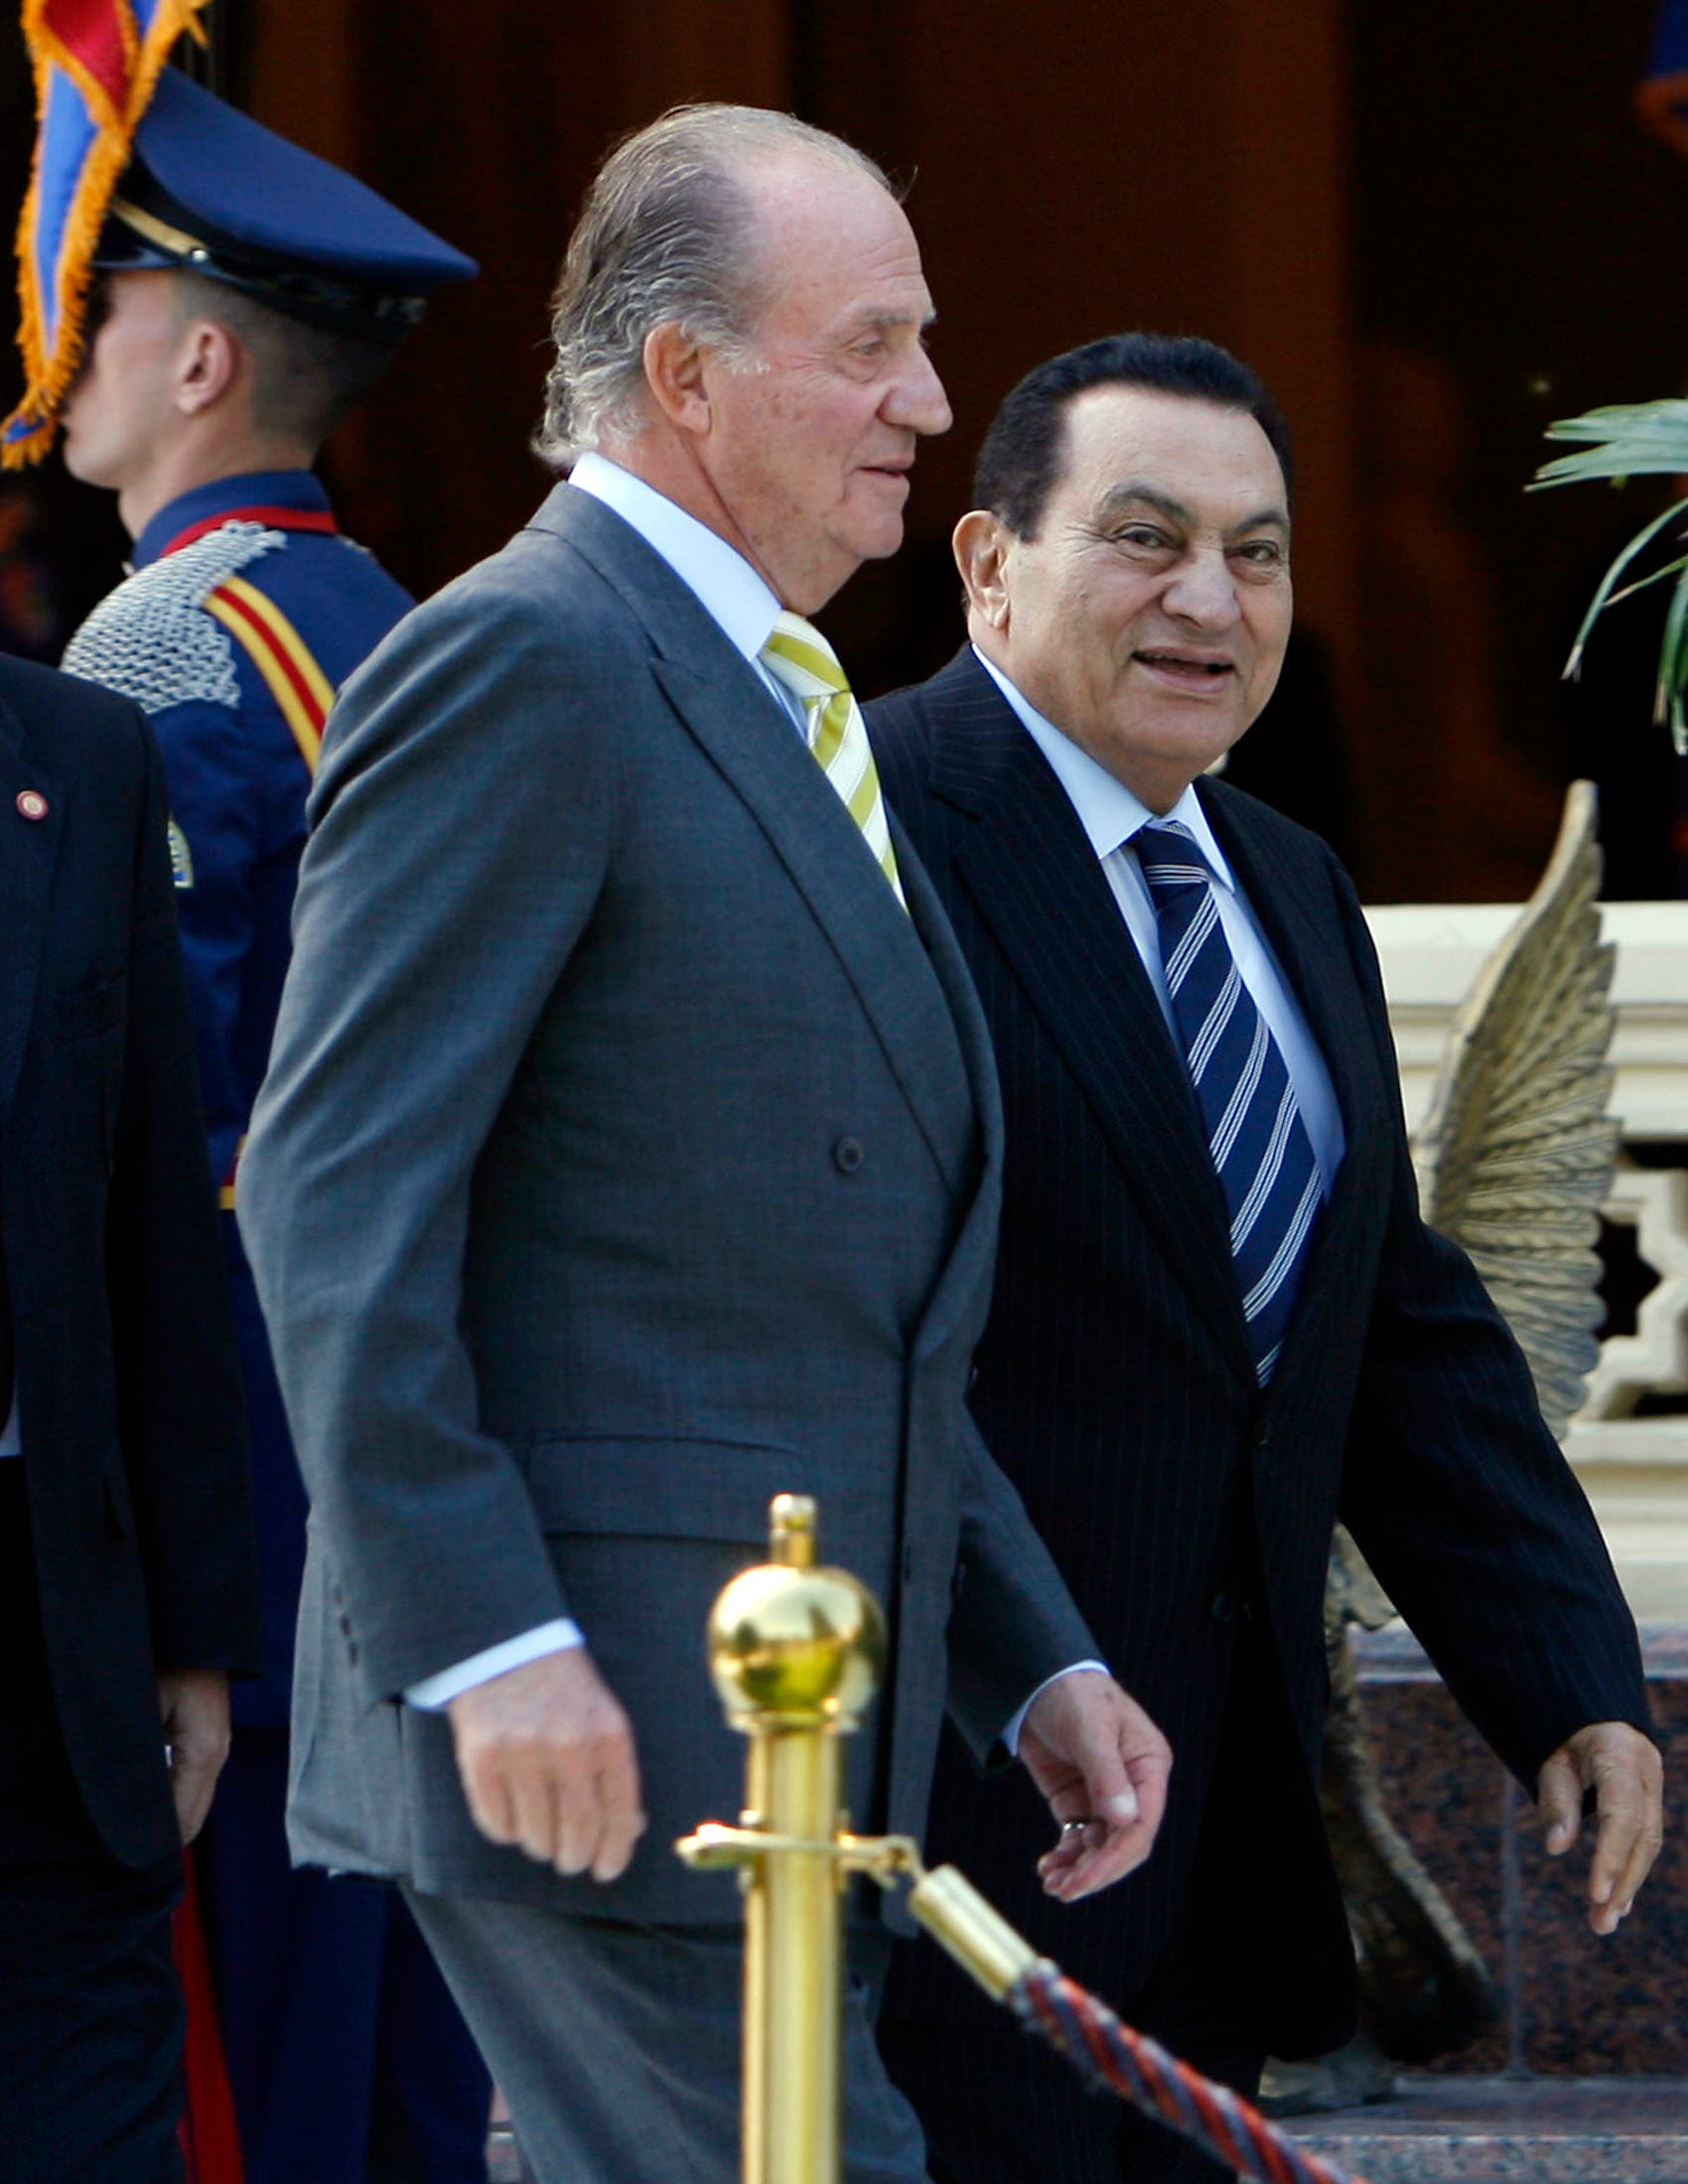 Egyptian President Hosni Mubarak (R) welcomes Spain's King Juan Carlos during an honour guard ceremony at the Presidential Palace in Cairo, February 5, 2008. (Reuters)